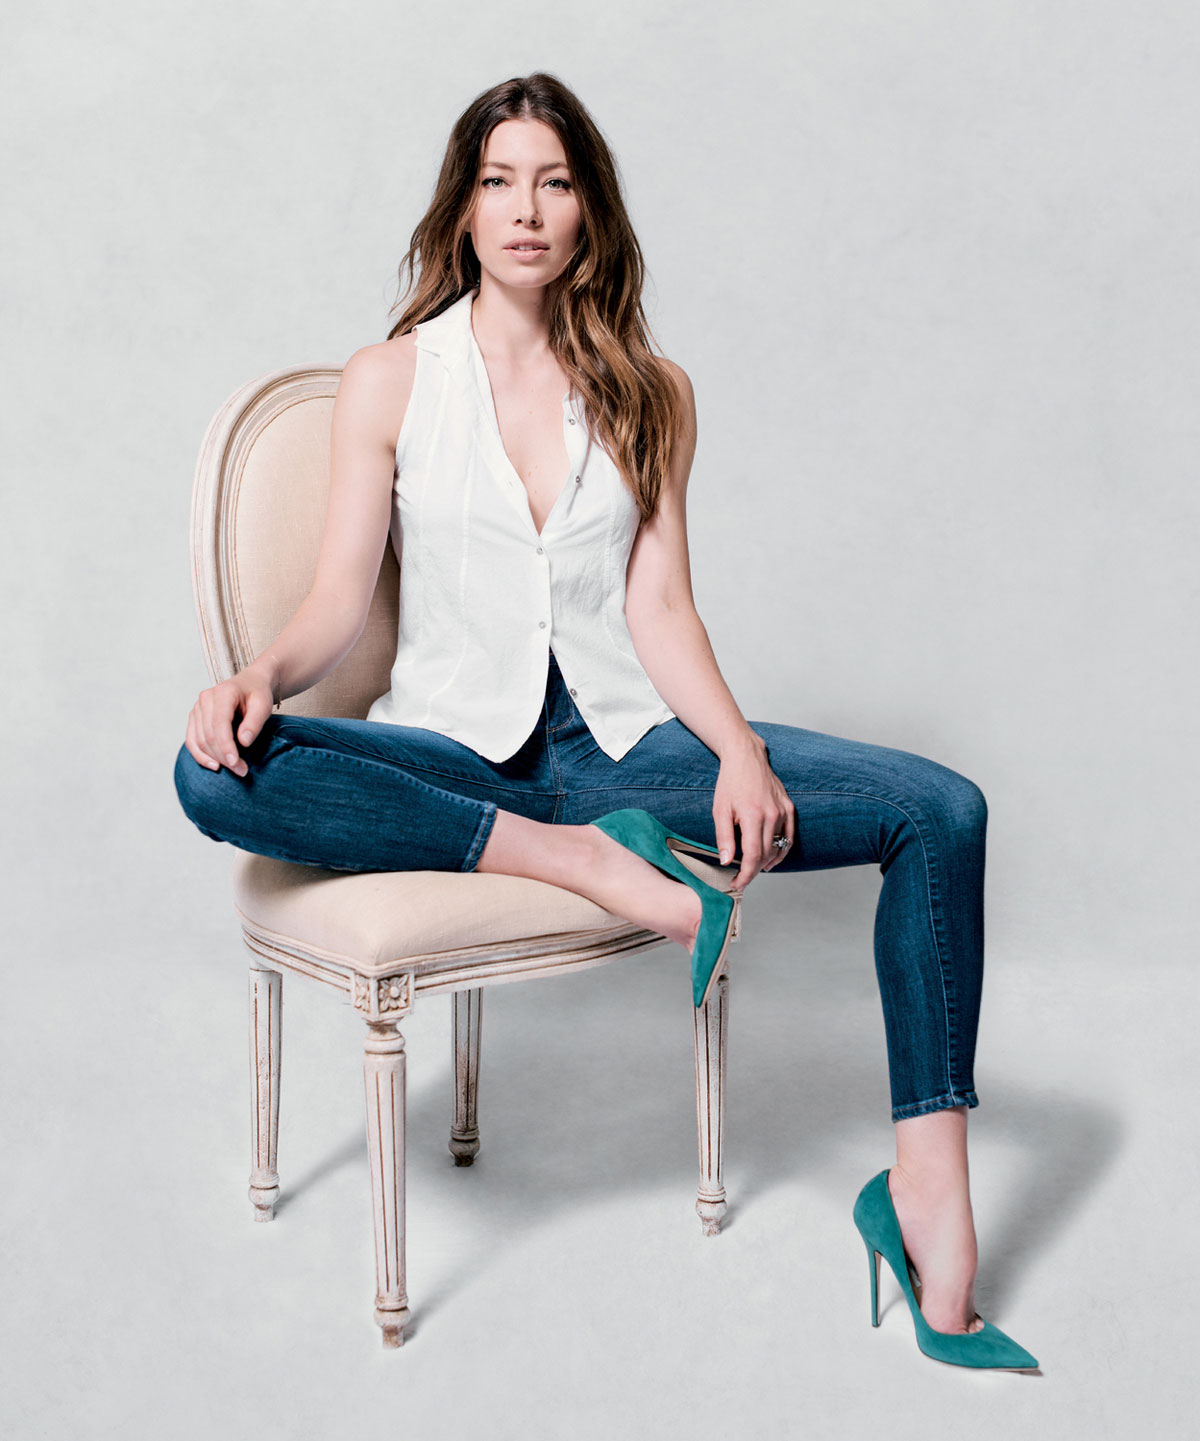 JESSICA BIEL - 2014 Jeff Vespa The Art of Discovery Photoshoot ...